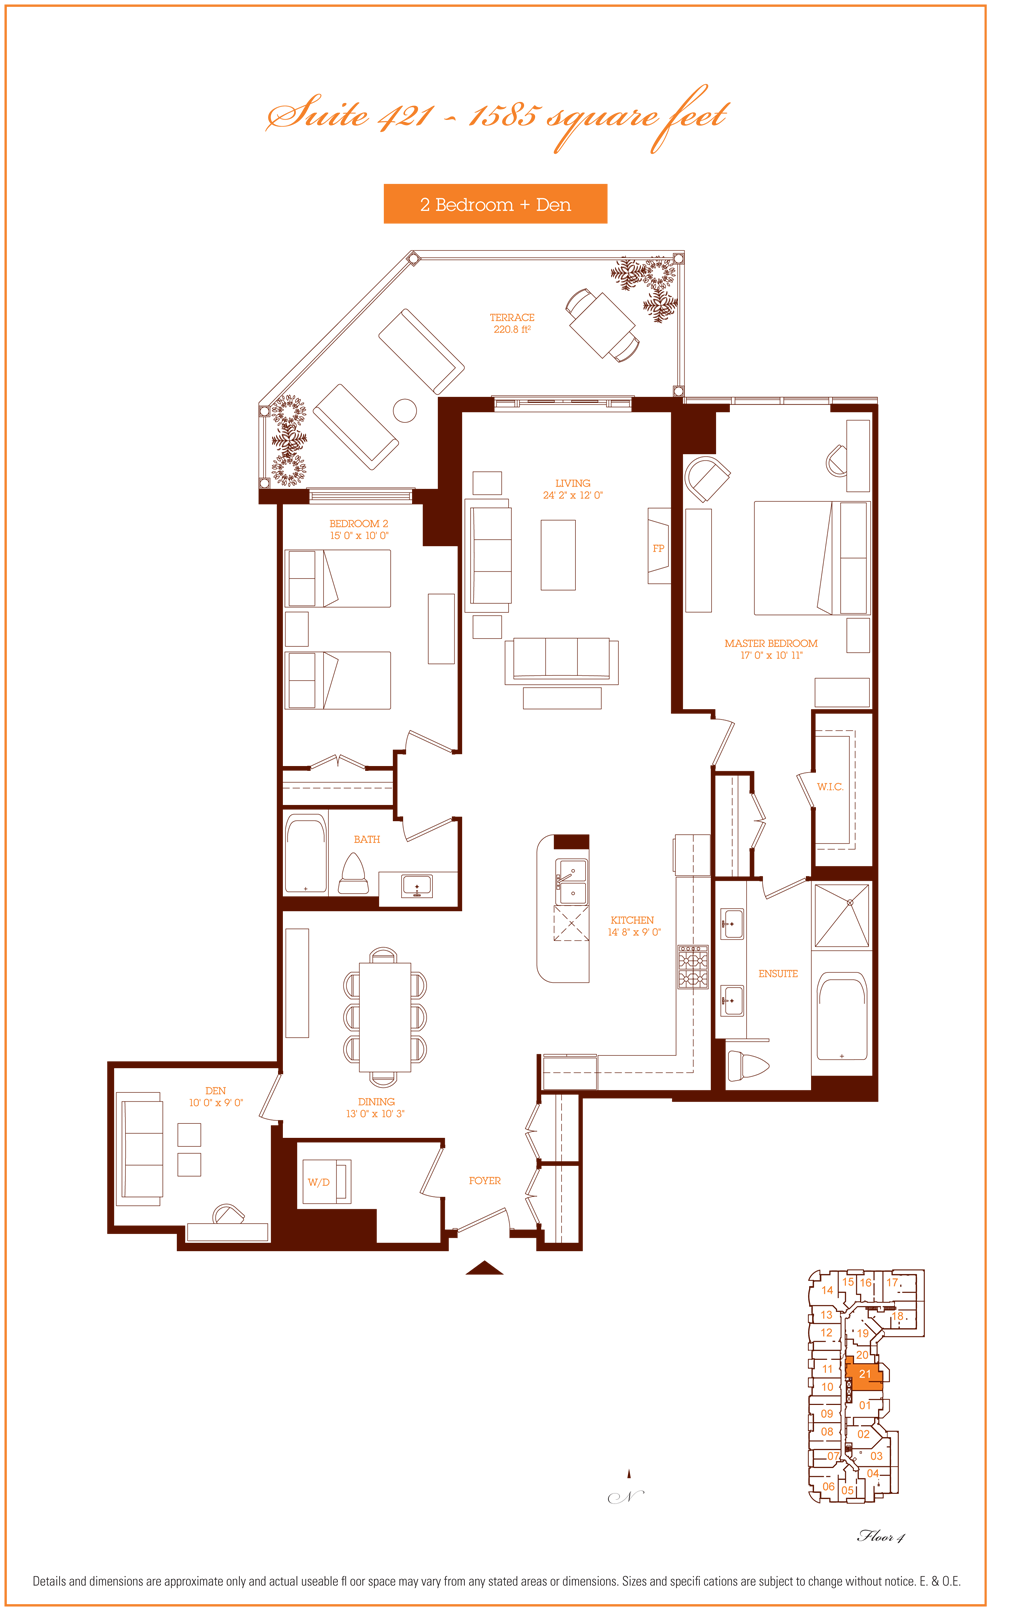 1717 AVENUE - FLOORPLANS TWO BED 1585 SQ FT - CONTACT YOSSI KAPLAN